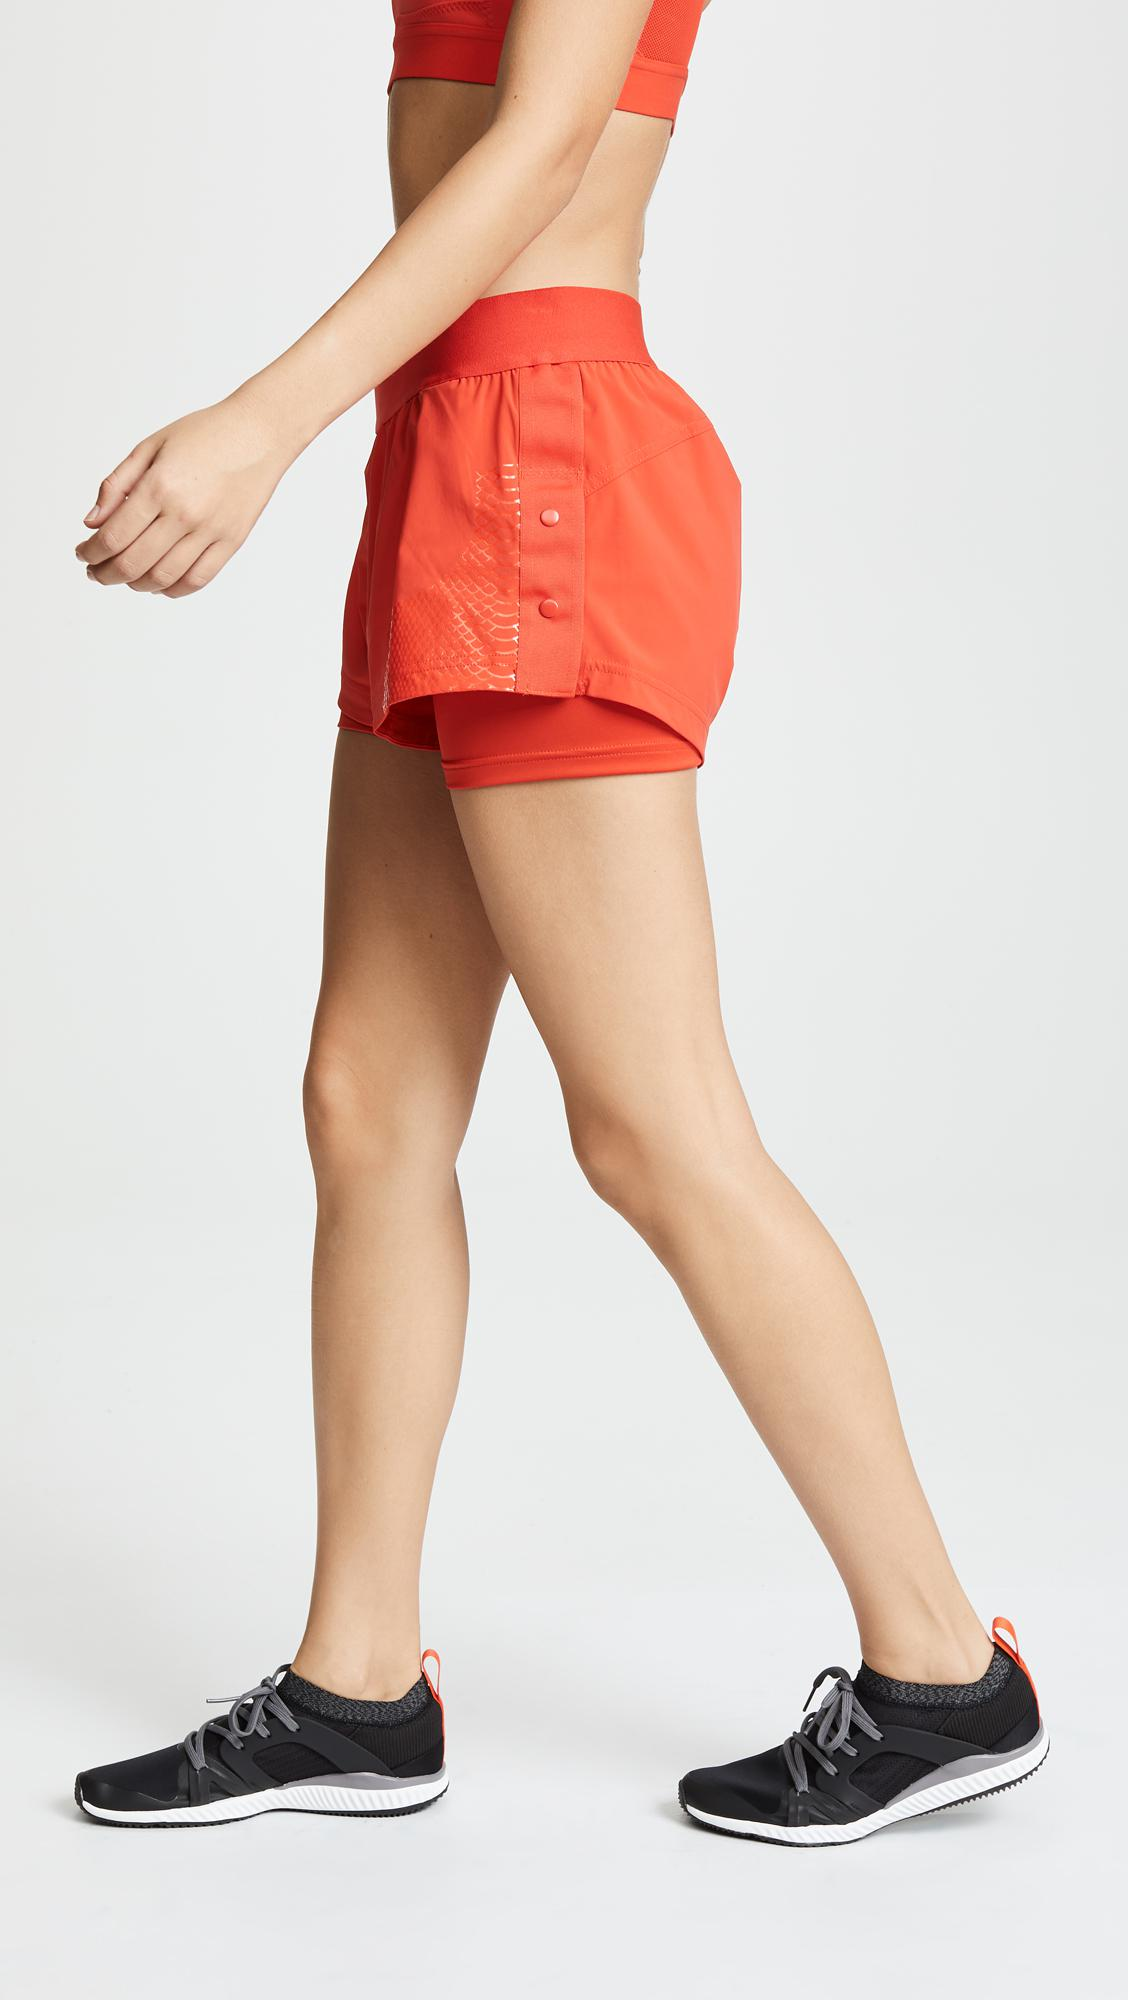 78f51eb1e Gallery. Previously sold at: Shopbop · Women's Cut Off Shorts ...